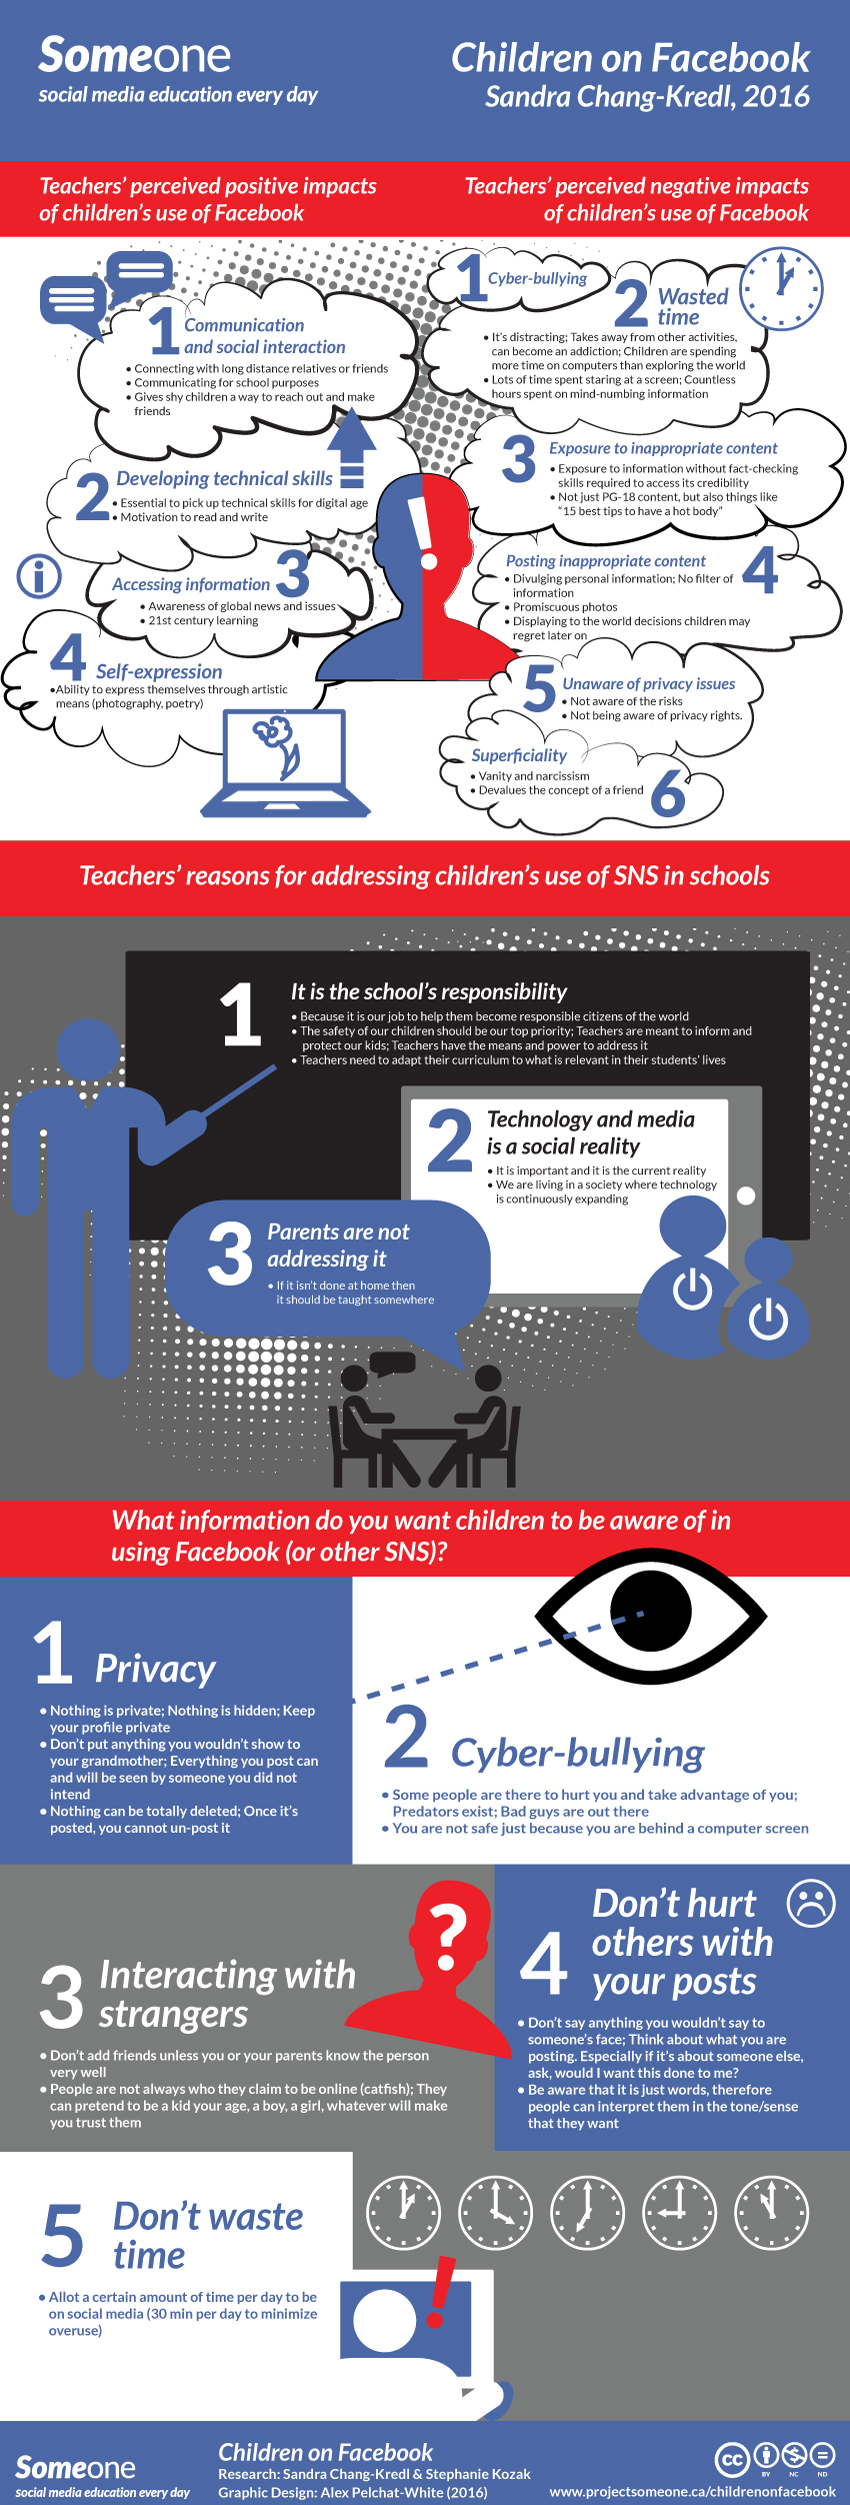 childrenonfacebook_infographic_web